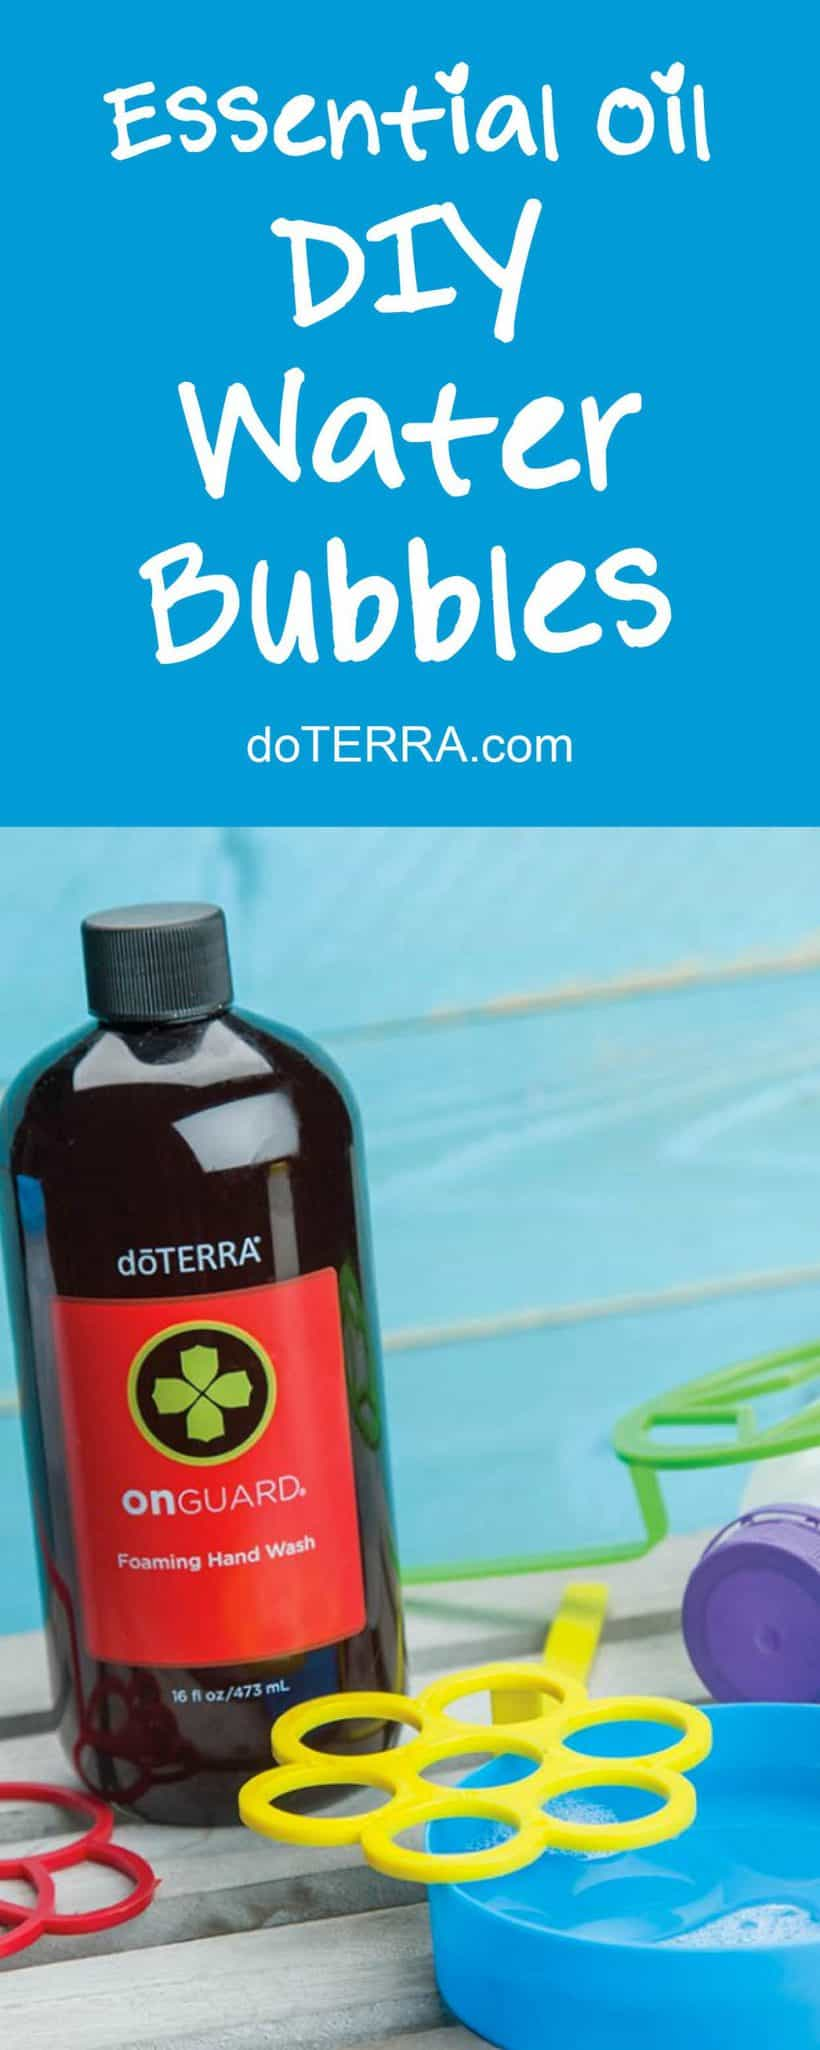 doTERRA DIY Bubbles Recipe